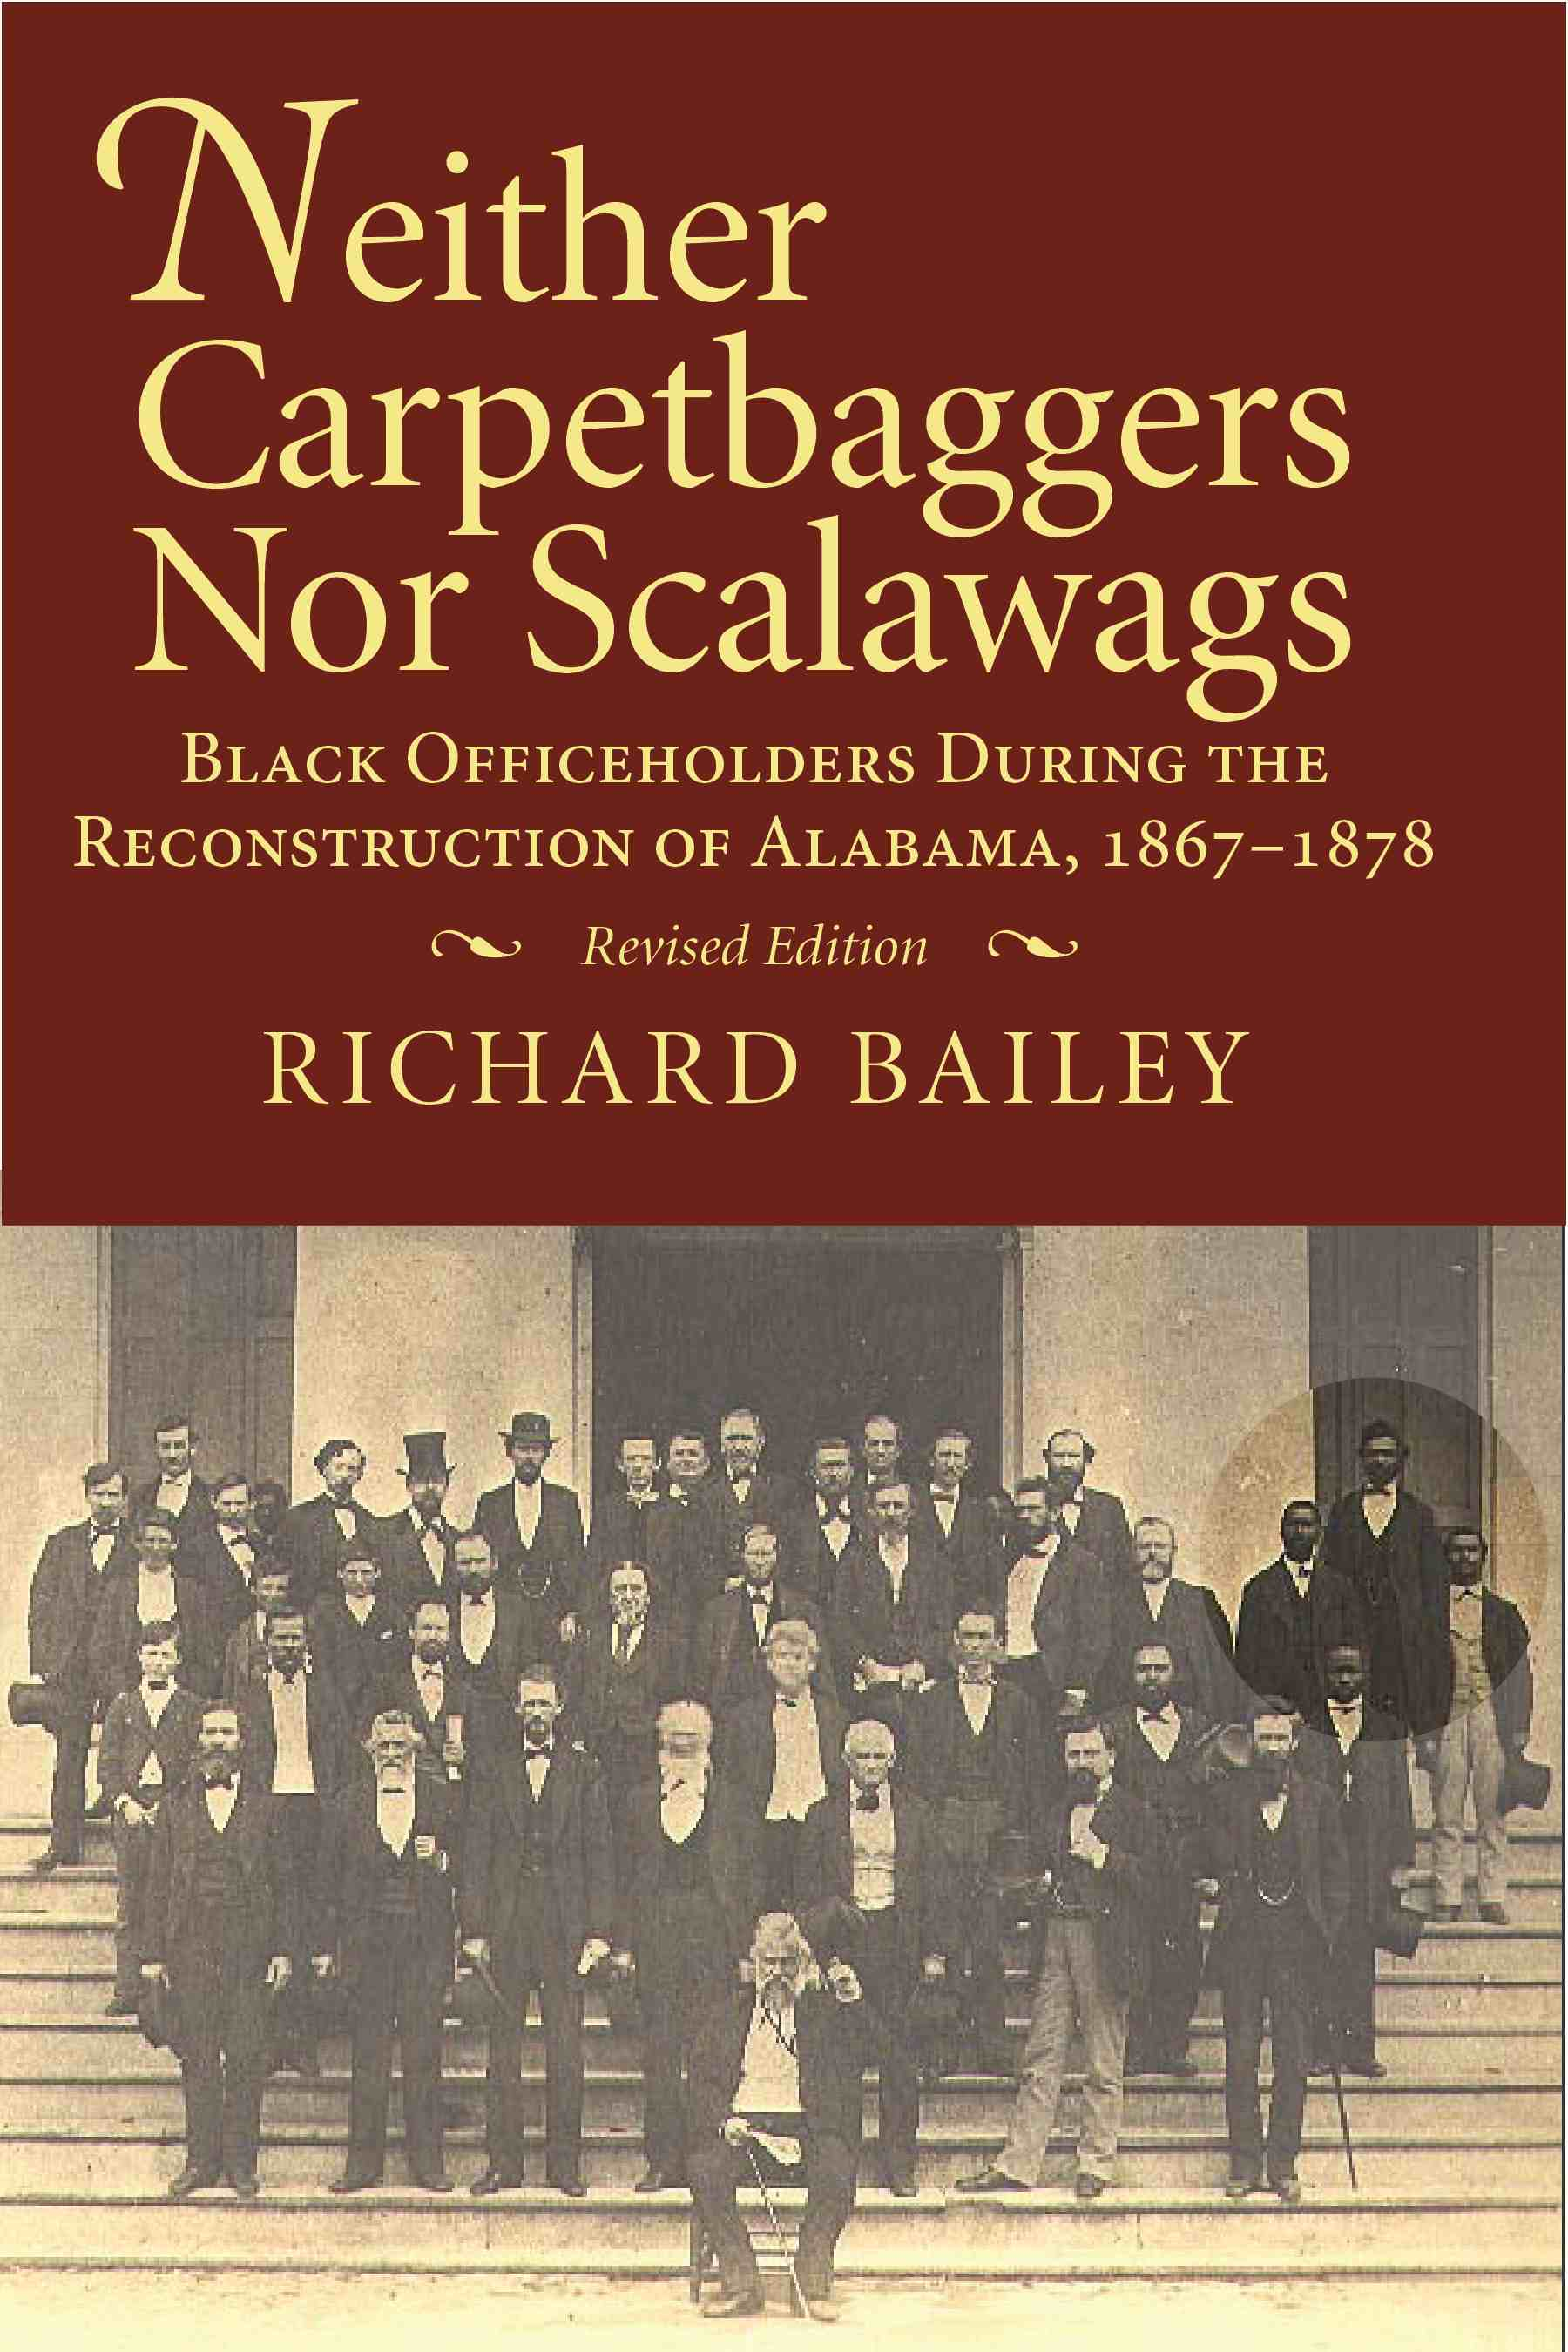 Neither Carpetbaggers Nor Scalawags: Black Officeholders During the Reconstruction of Alabama 1867-1878 by Richard Bailey